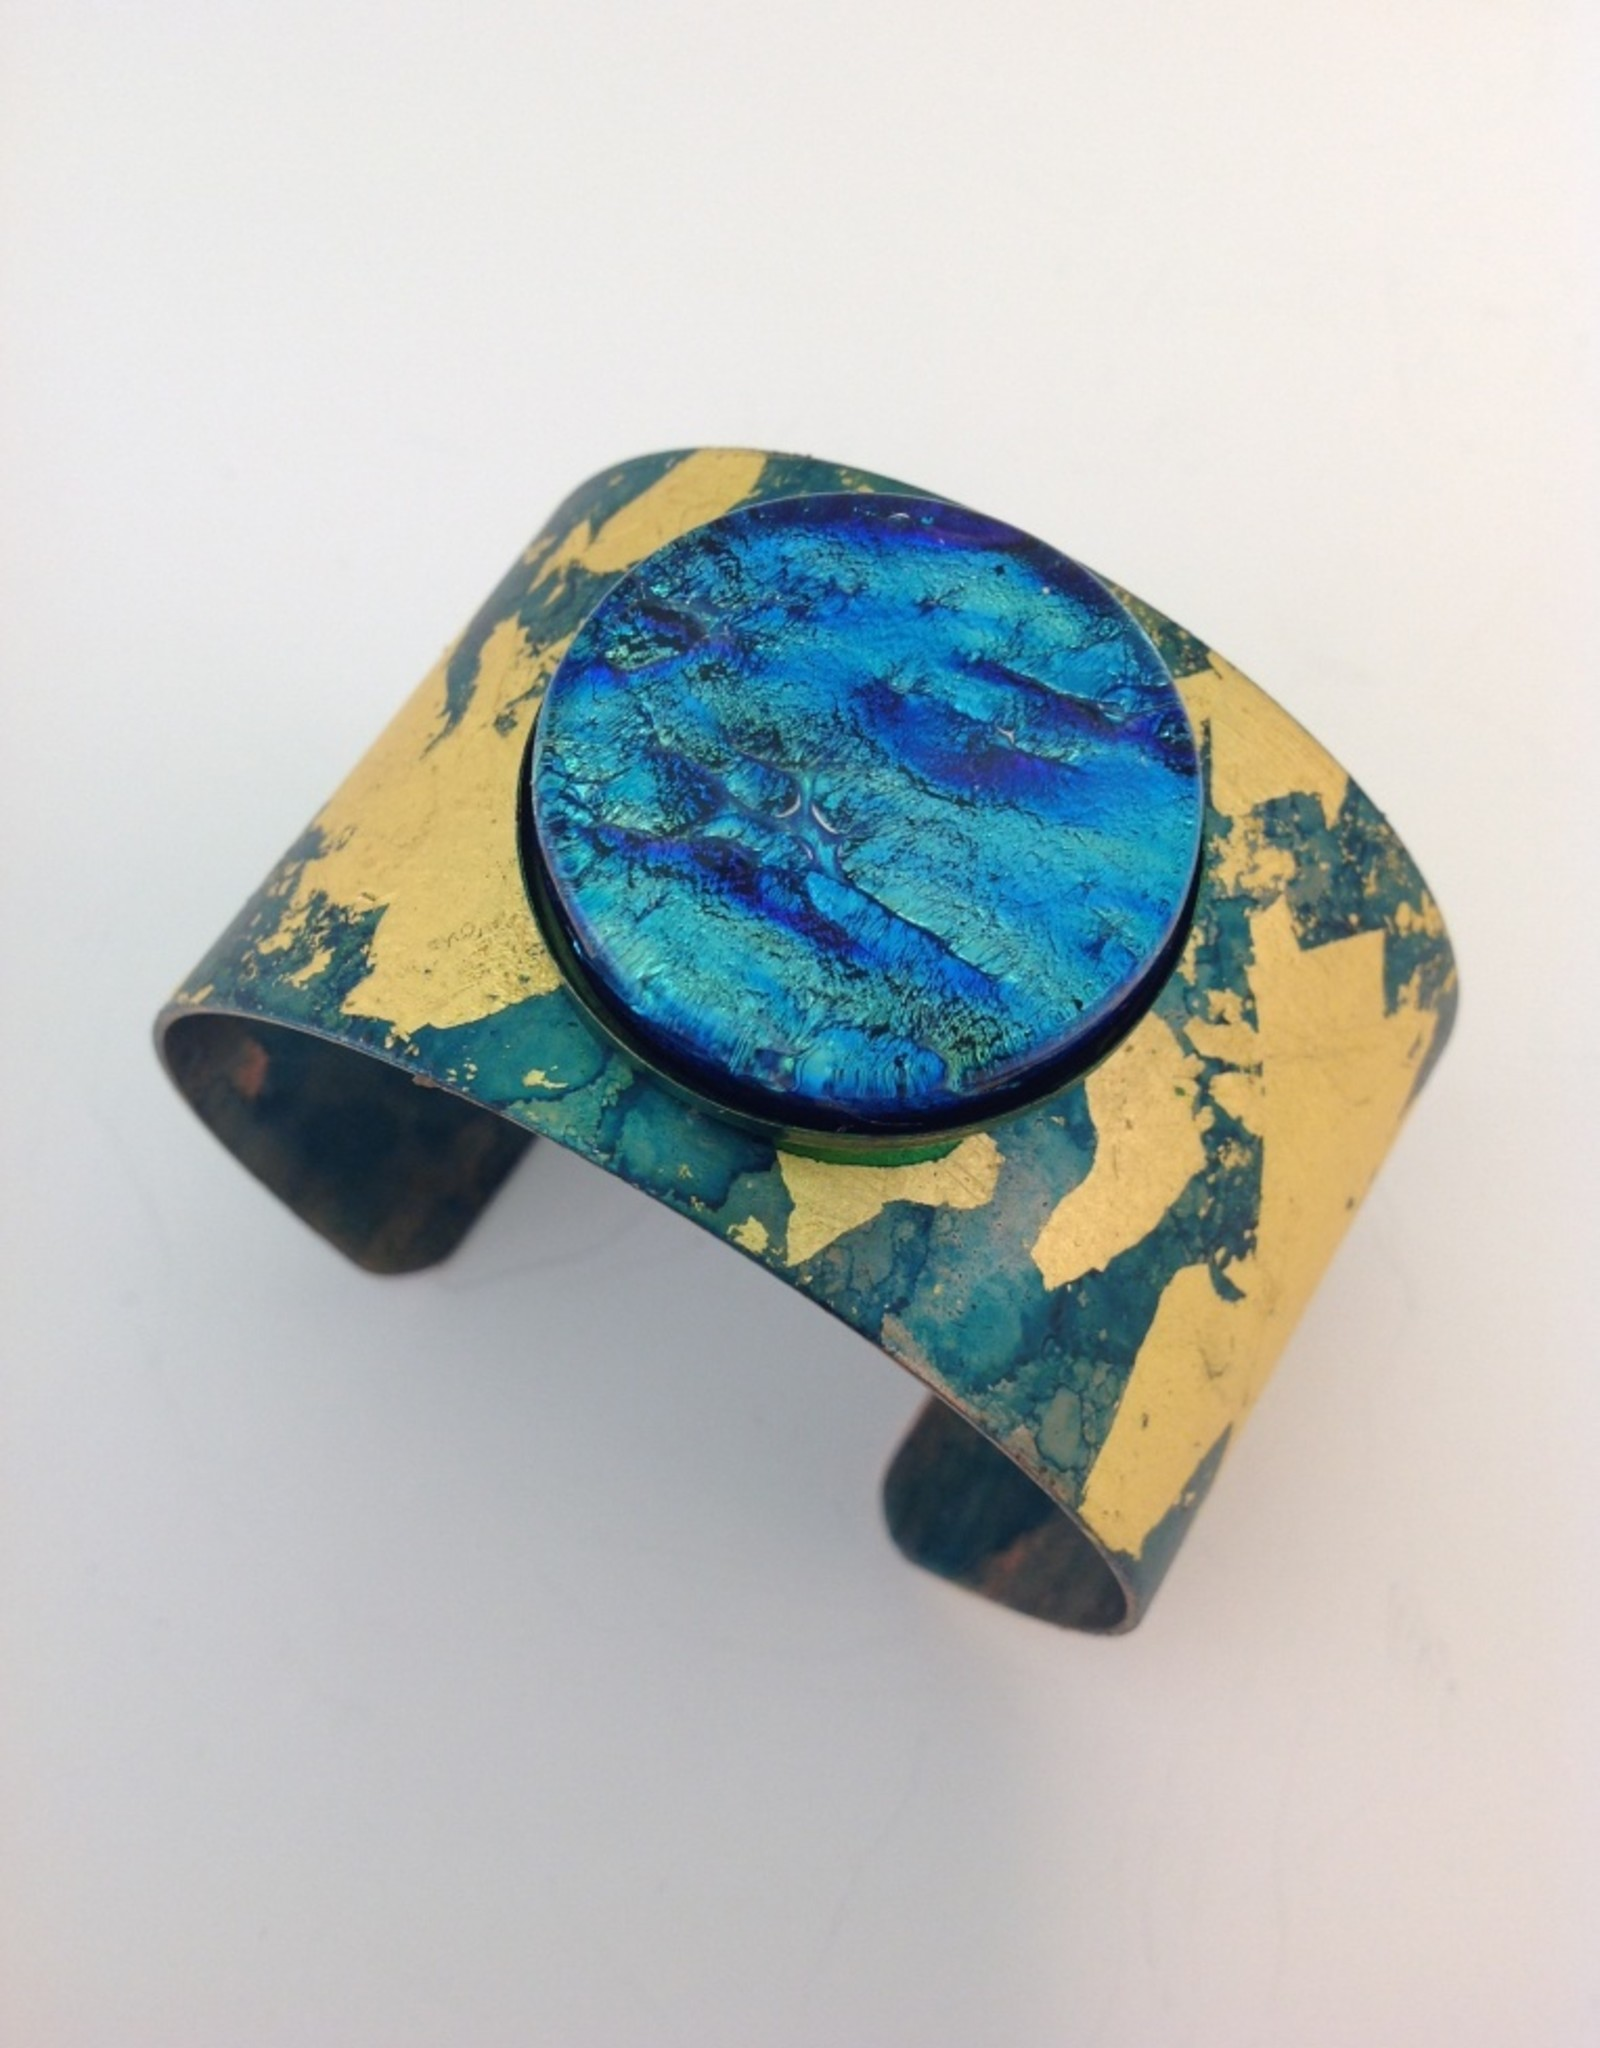 Ann Mackiernan Cuff with Gold Leaf and Glass Cabochon - Teal